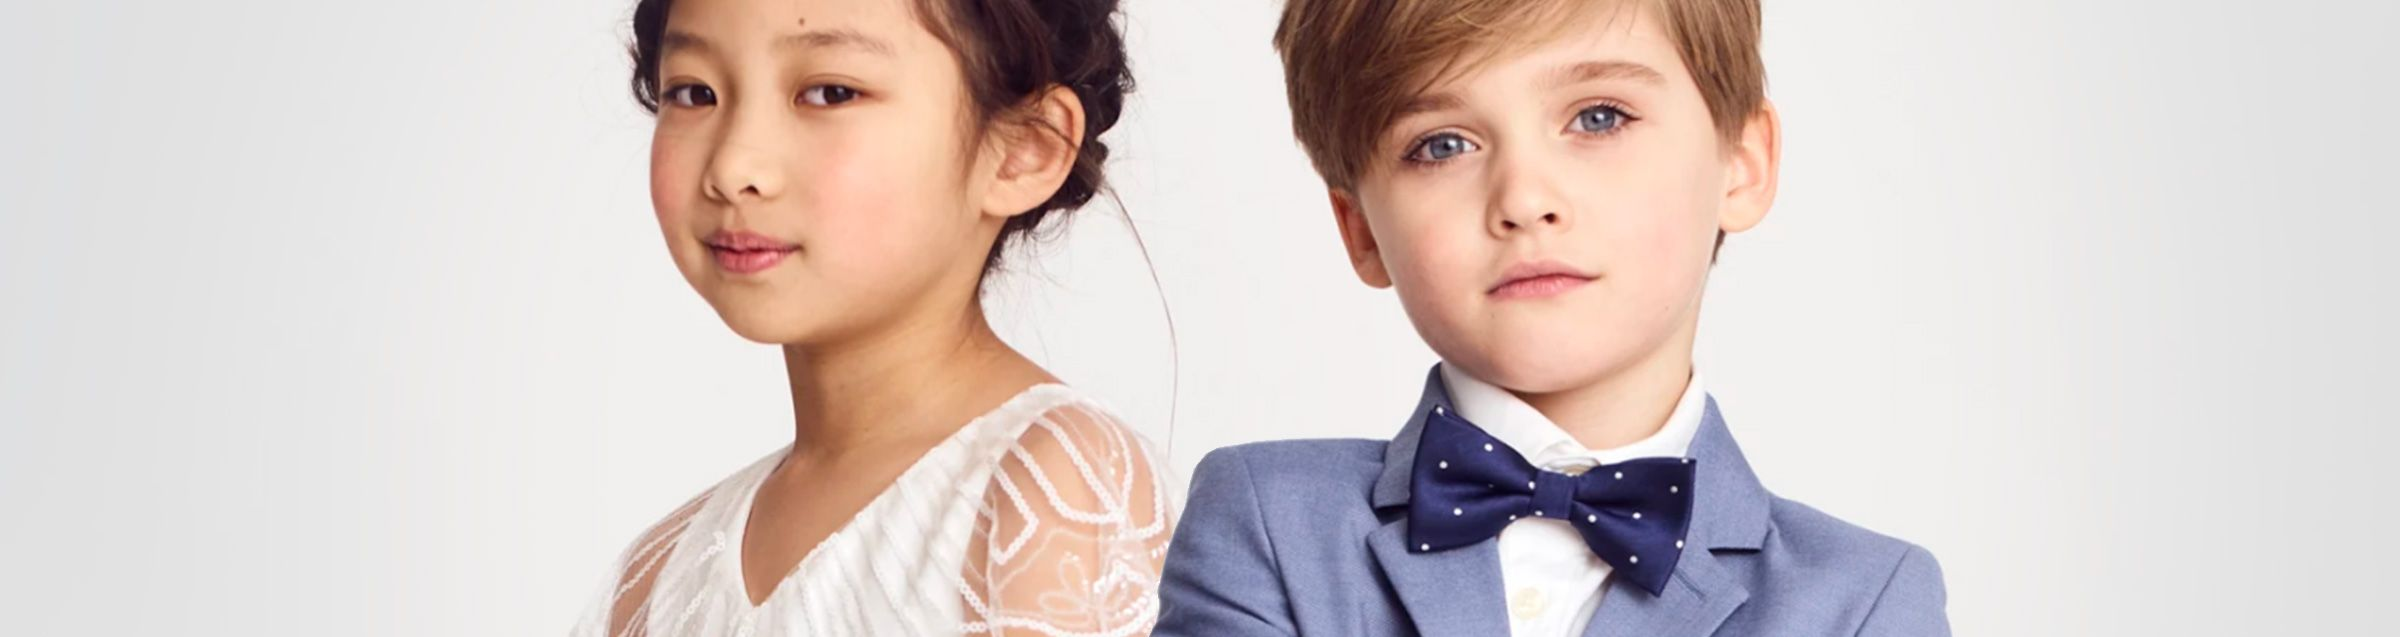 Children's wedding fashion